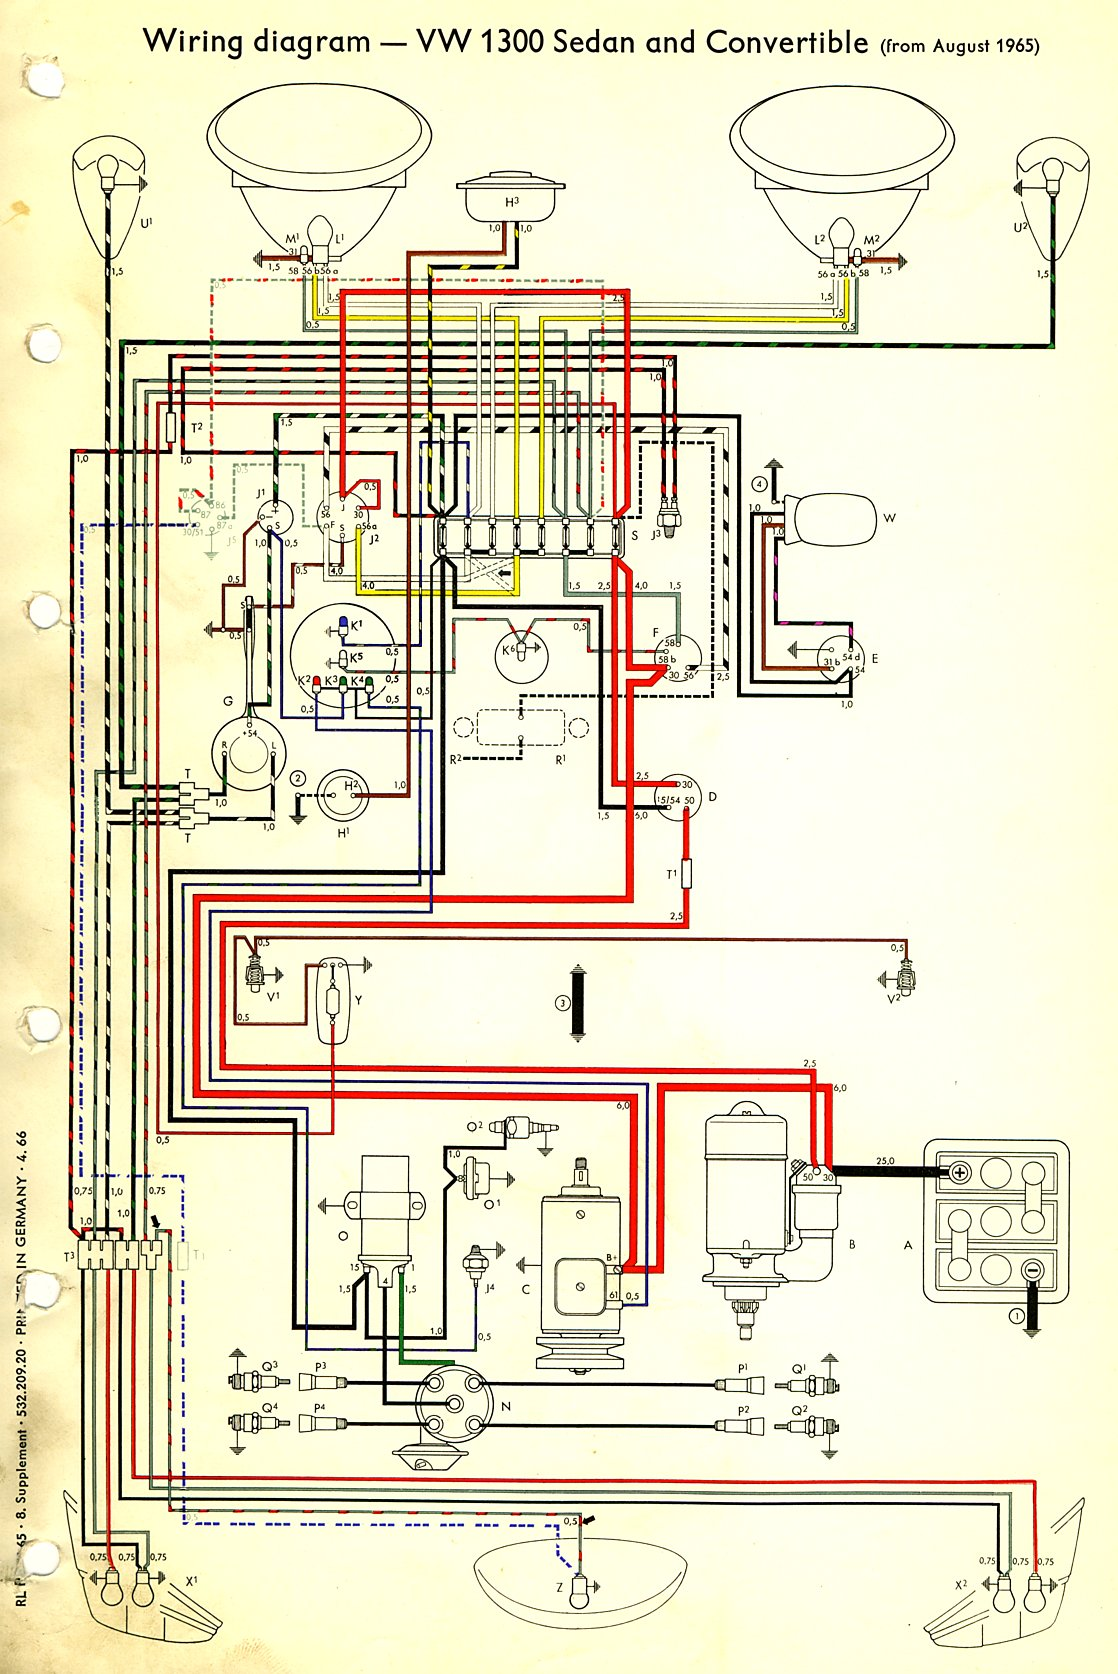 bug_66 1966 beetle wiring diagram thegoldenbug com vw wiring diagrams at cita.asia